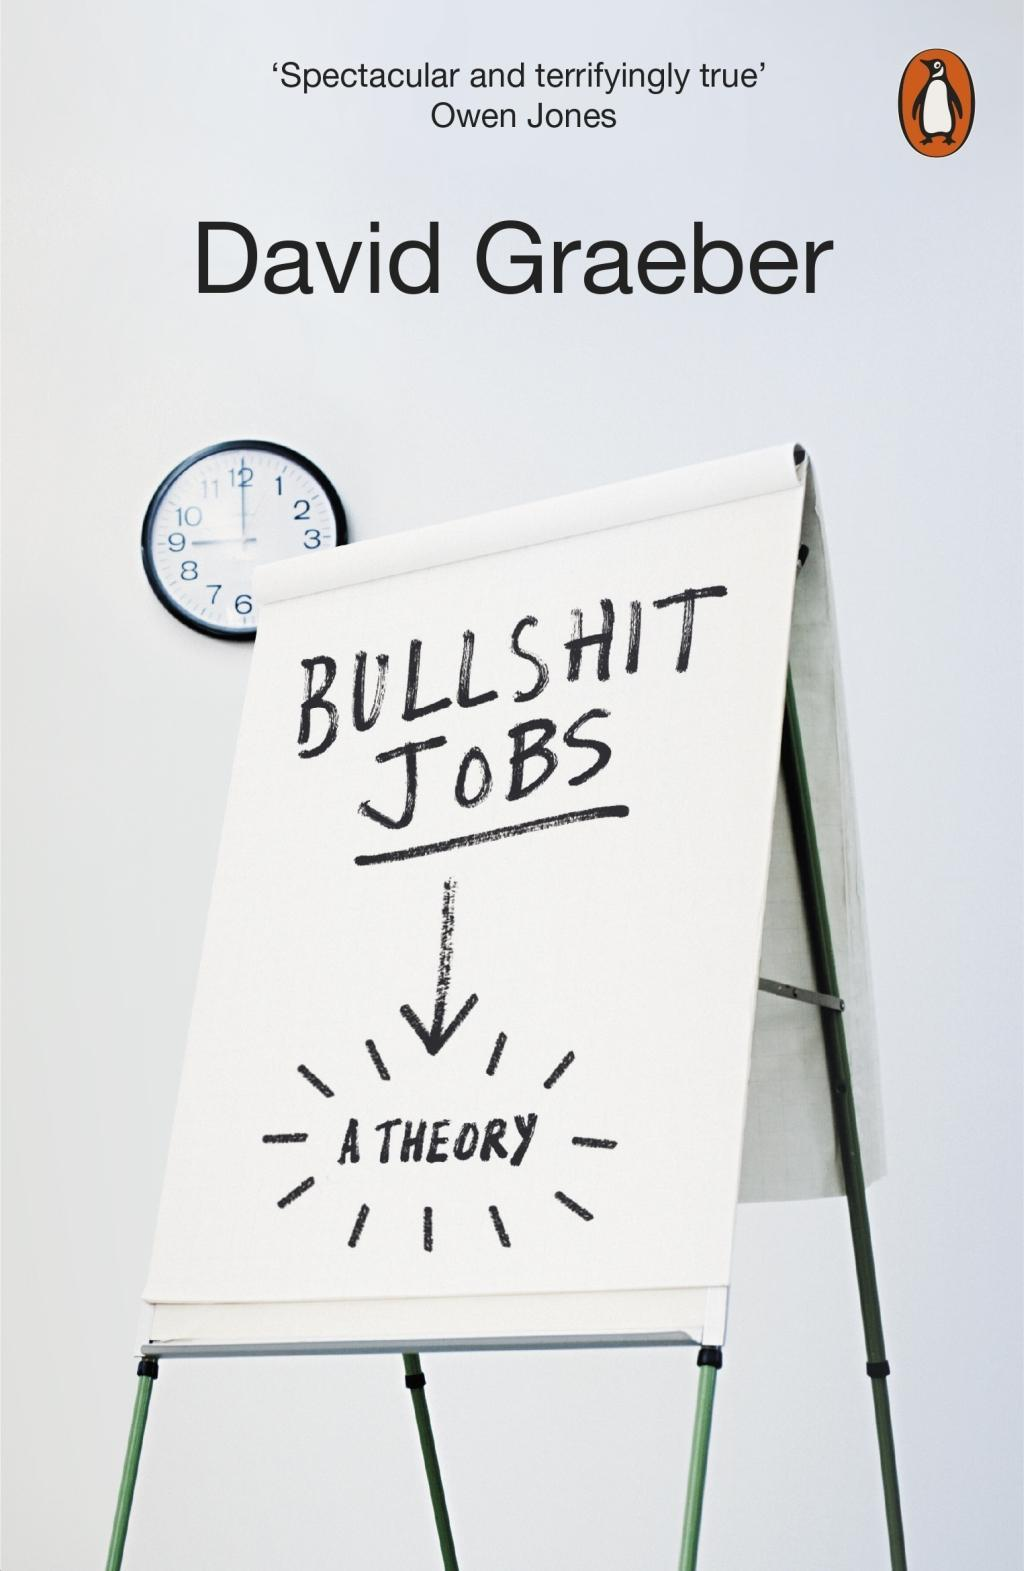 Bullshit Jobs  The Rise of Pointless Work, and What We Can Do About It  David Graeber  Taschenbuch  Englisch  2019